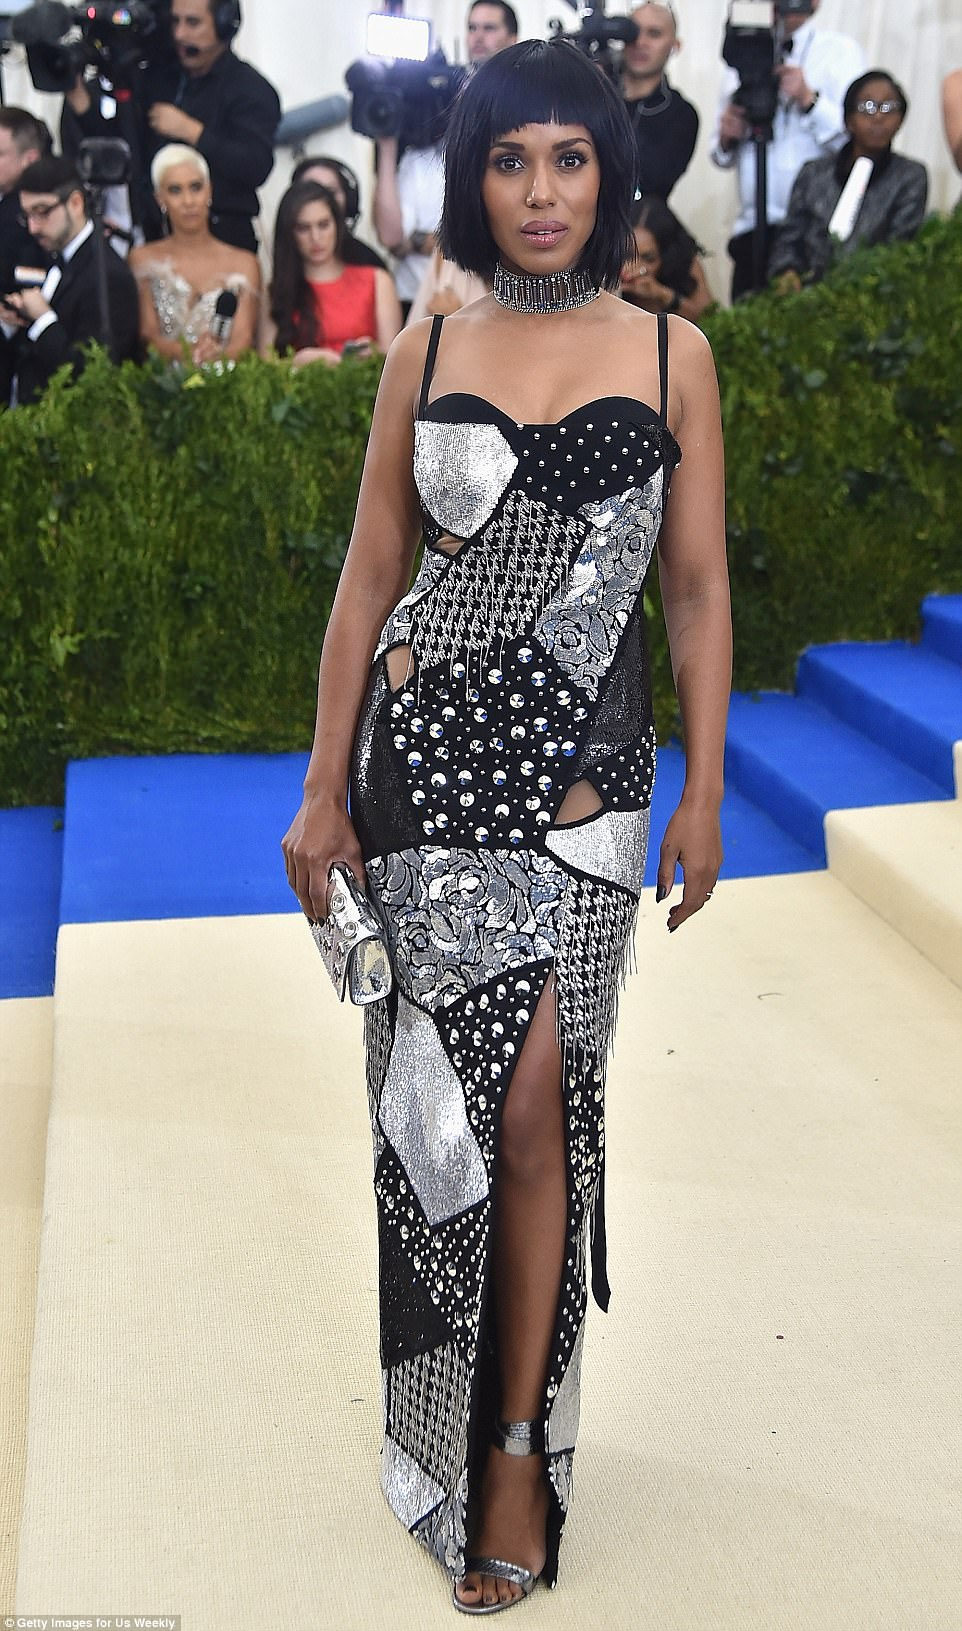 Stunner: Kerry Washington rocked a bold black and silver dress with a severe bob at Monday night's Met Gala in NYC